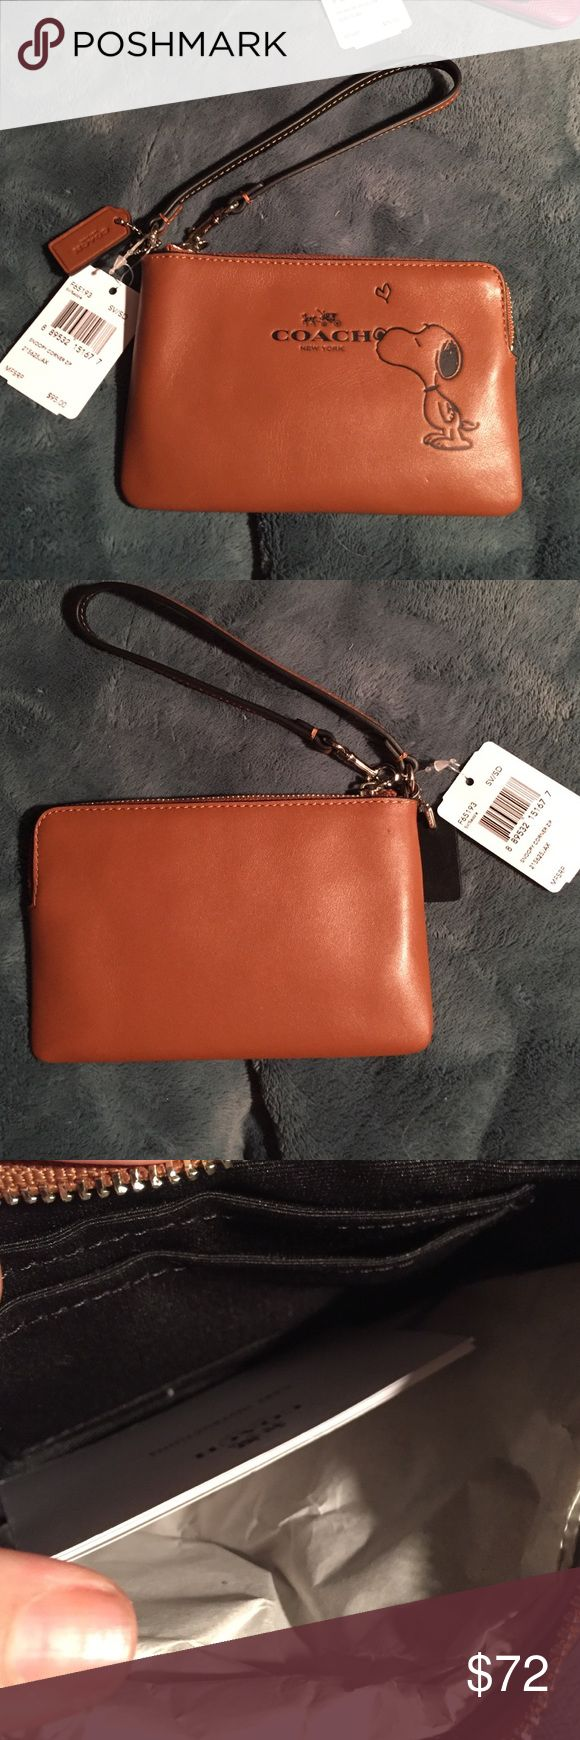 Brand new with tags Coach Snoopy Wristlet Coach Snoopy saddle Wristlet  brand new with tags and will come in a coach box. I was gonna keep it but medical stuff is piling up  my lose your win!! Coach Bags Clutches & Wristlets